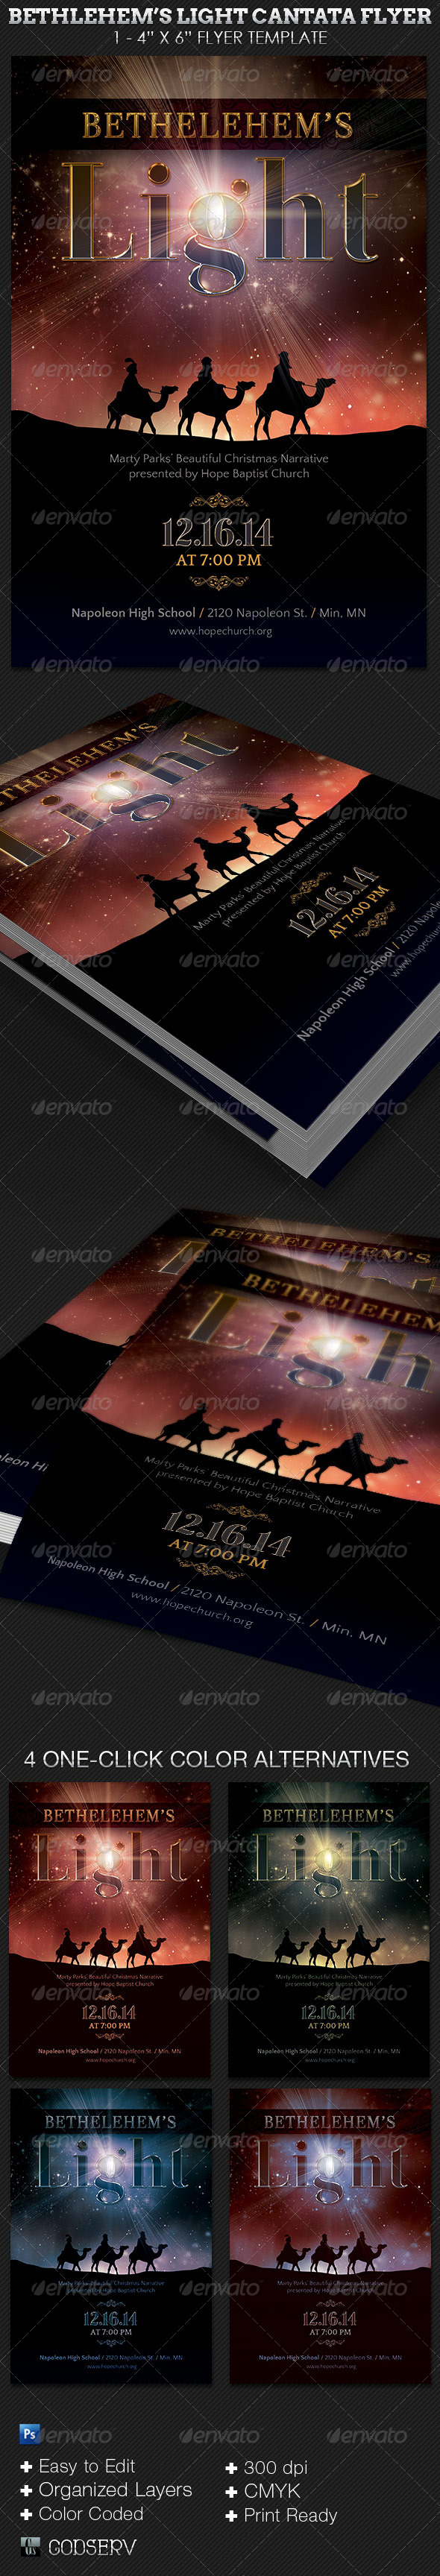 Bethlehem's Light Cantata Flyer Template  - Church Flyers